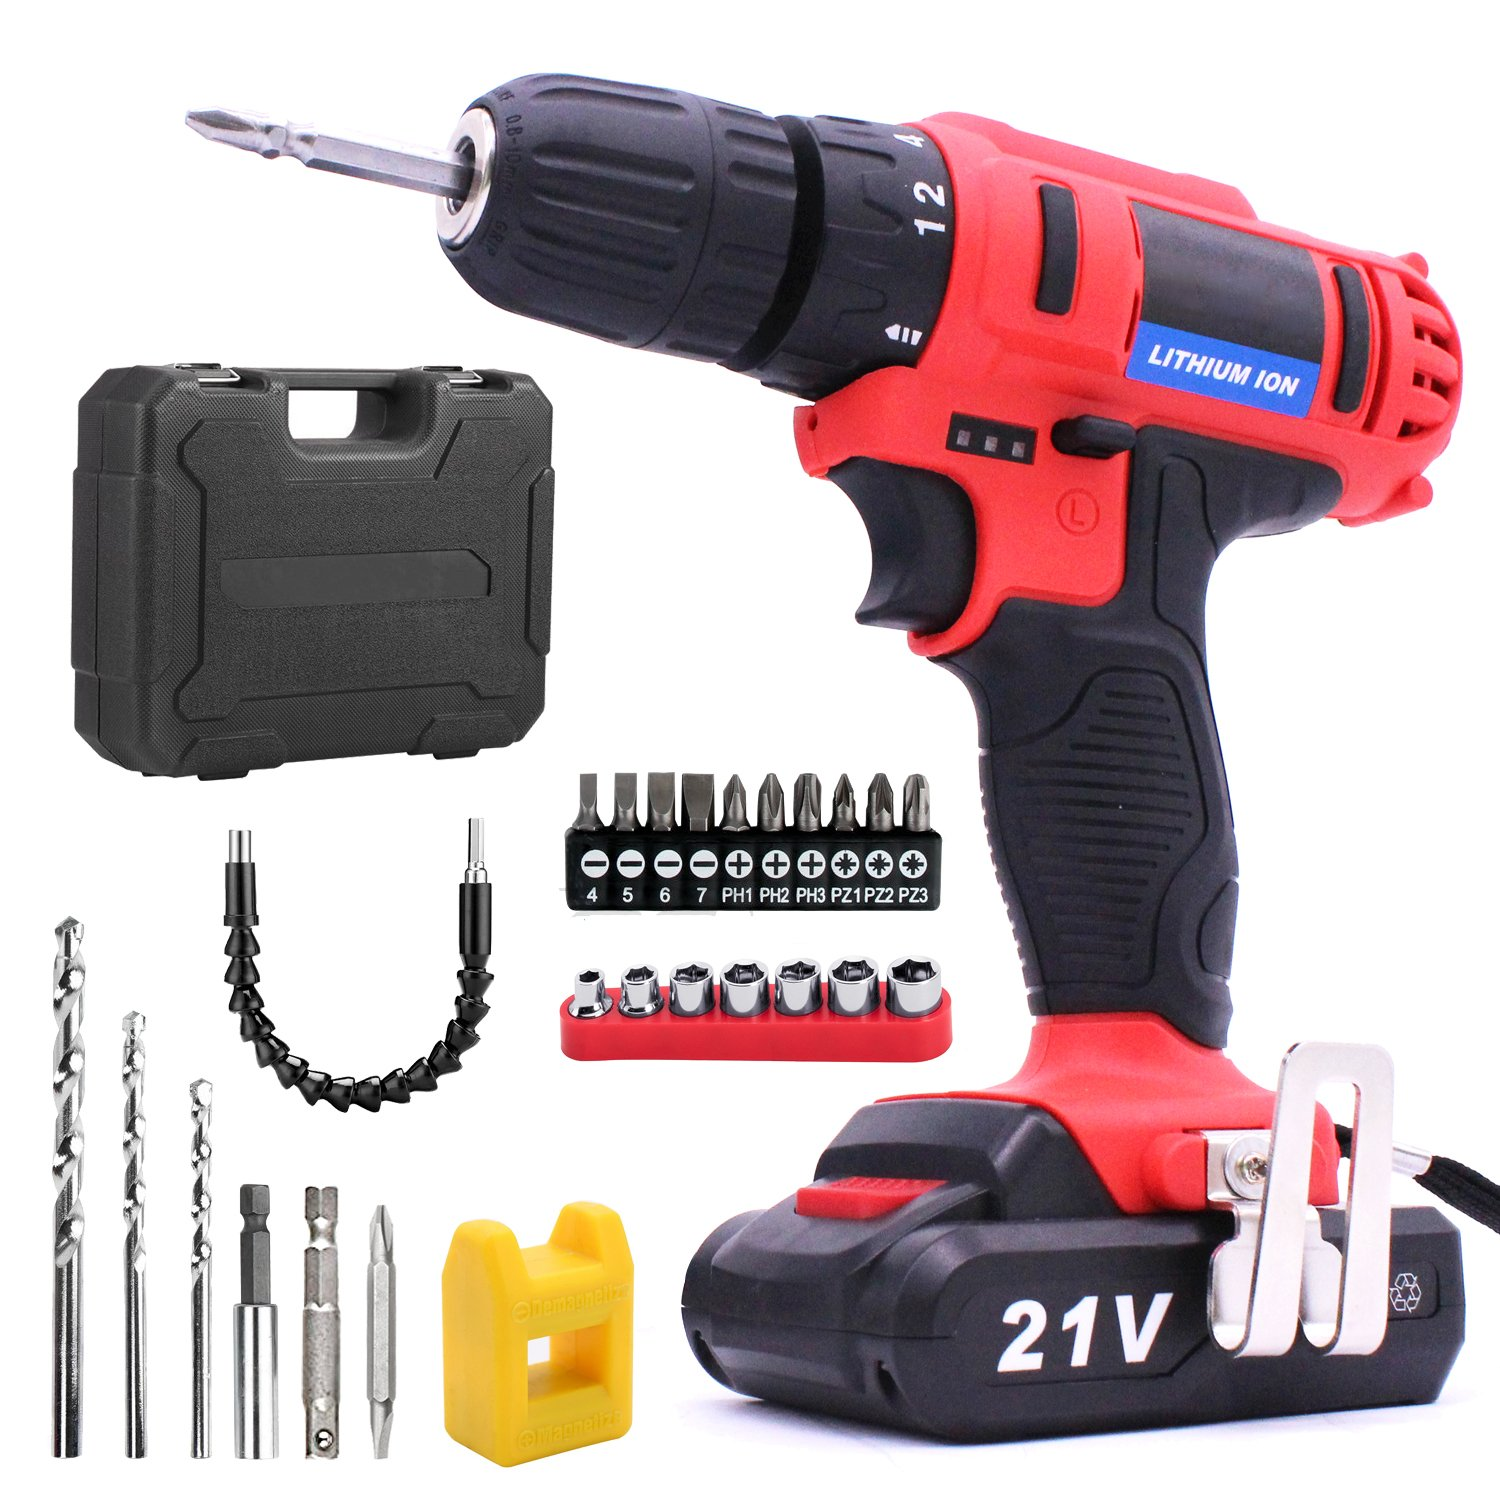 Lithium-Ion Cordless Drill/Driver Kit - VIDEN 21V Cordless Drills with Drill Bits Sets, Electric Screwdriver Powerful 2-Speed 18 Position Clutch, LED Light, Battery and Charger, Driver Accessories Cordless drill vi